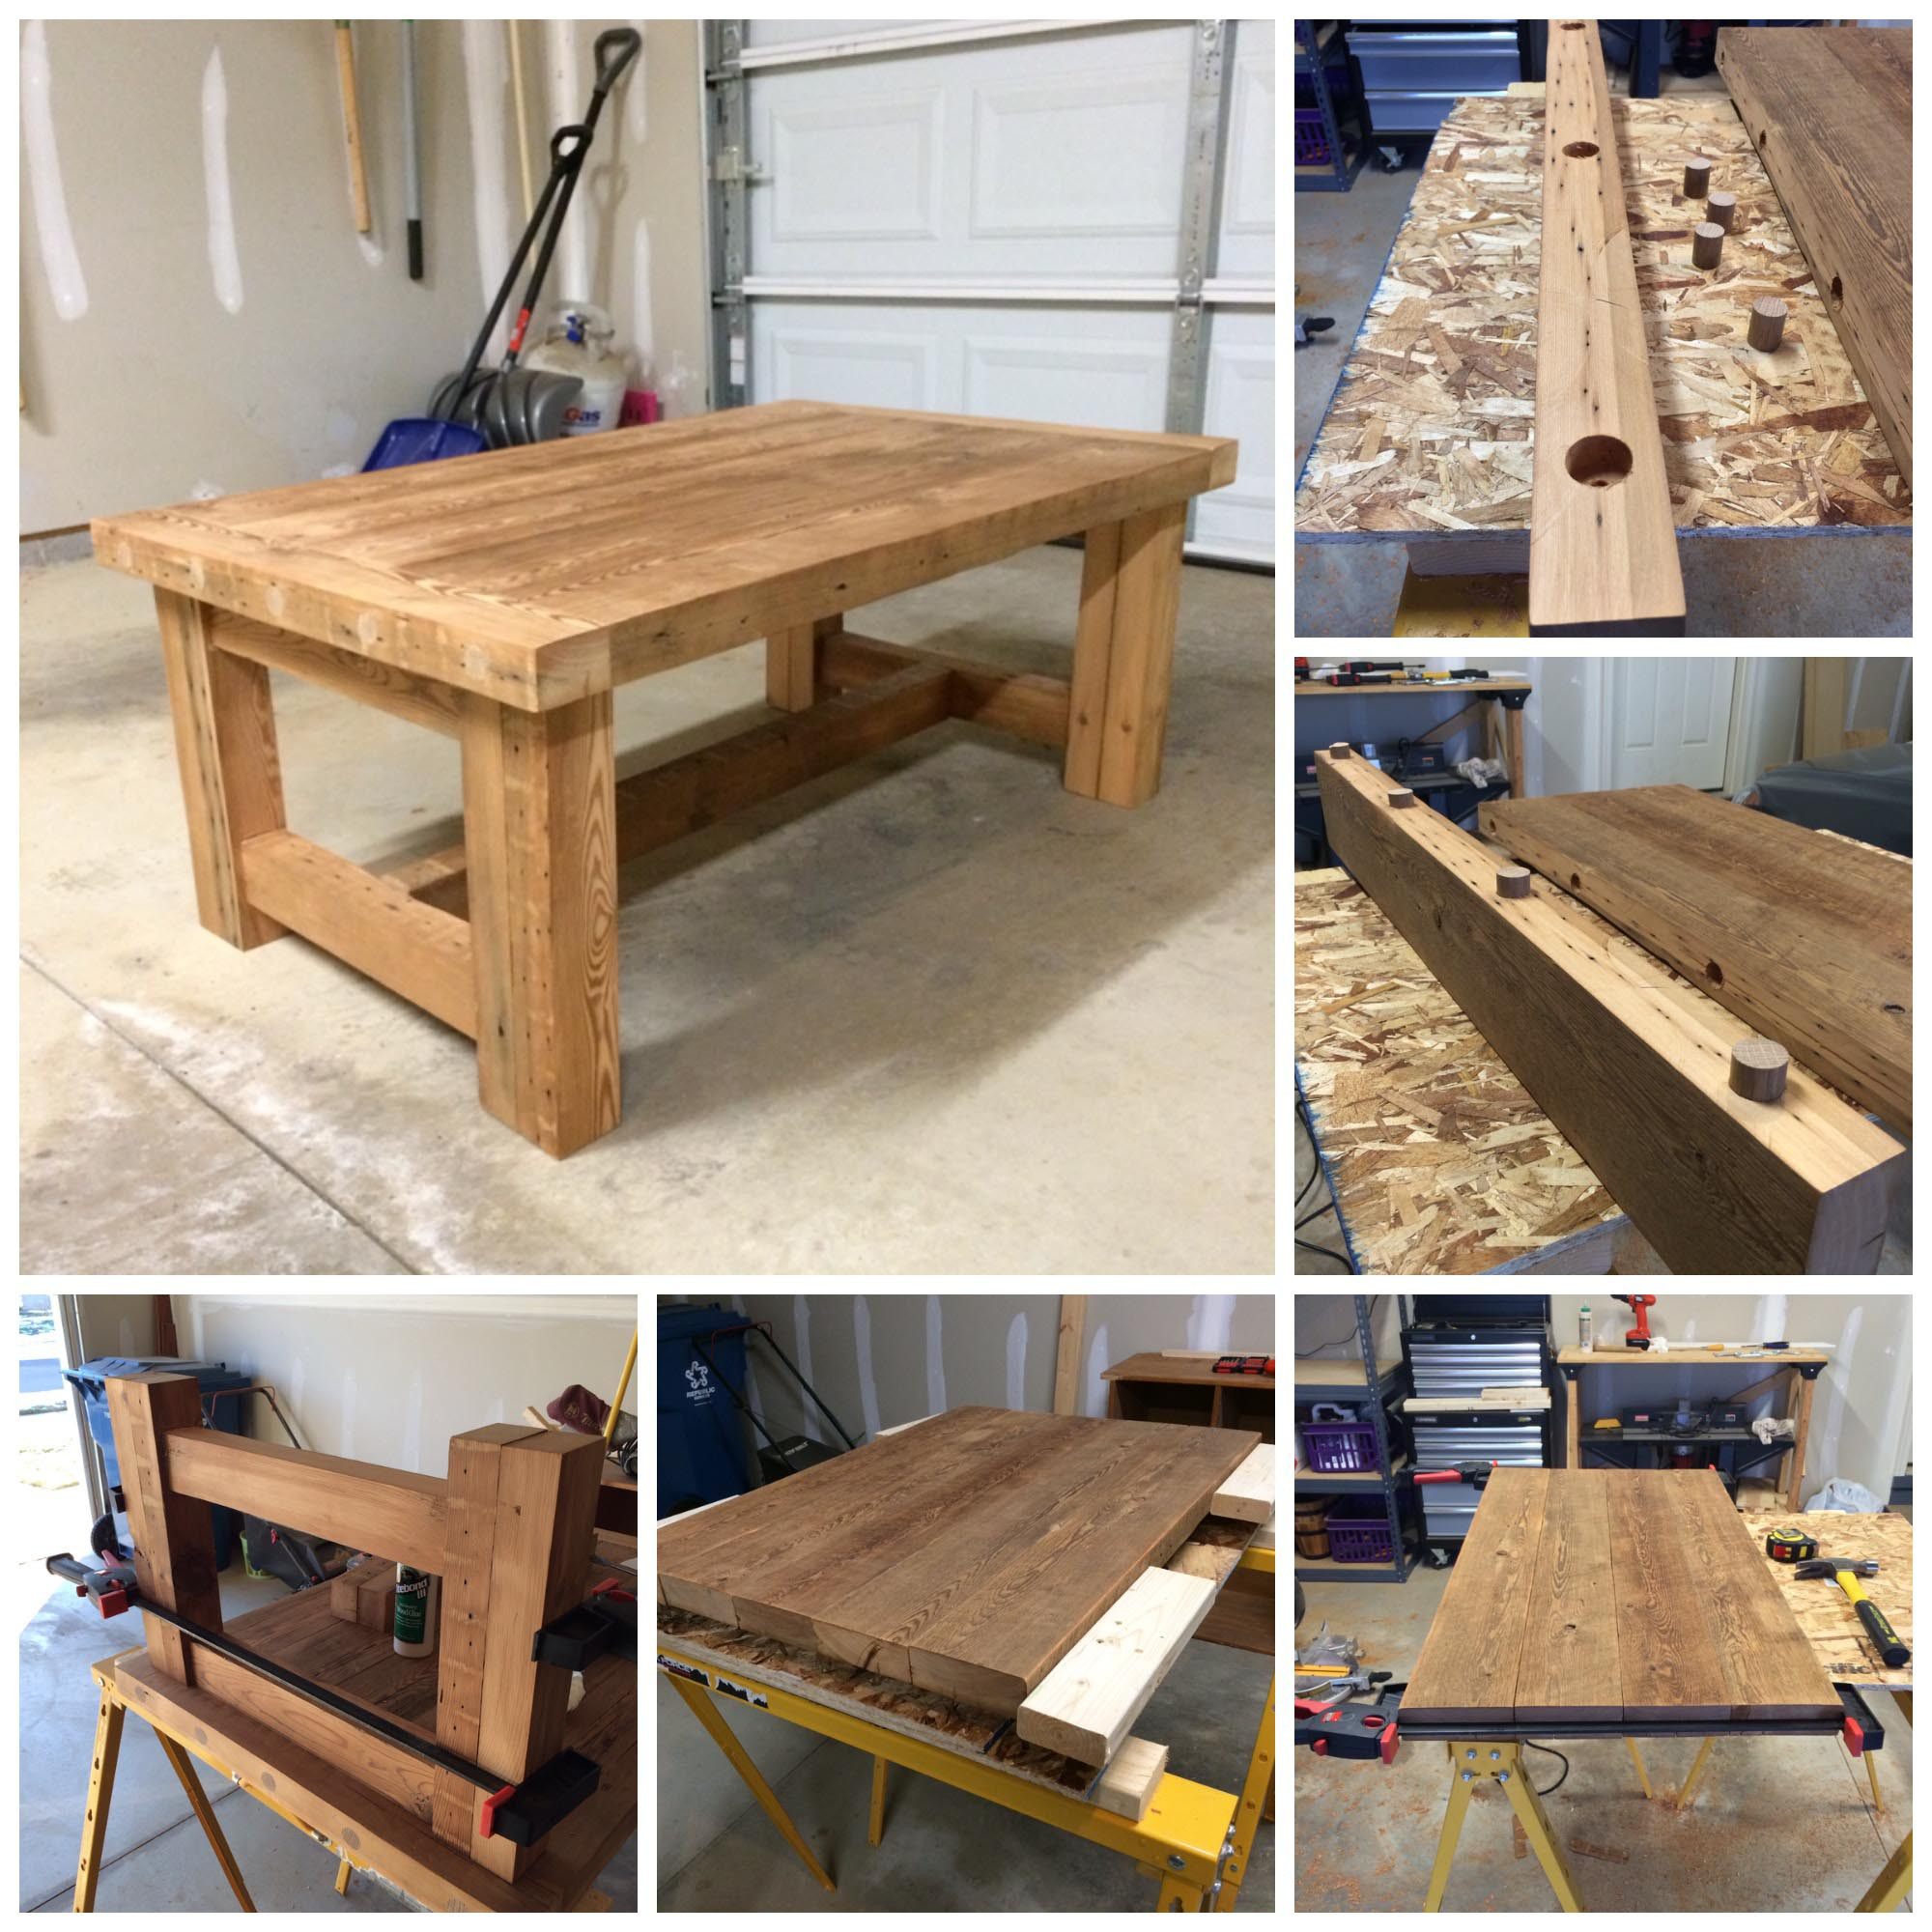 DIY Coffee Tables Plans  Coffee Table Plans are a Real Help for Creating Boards